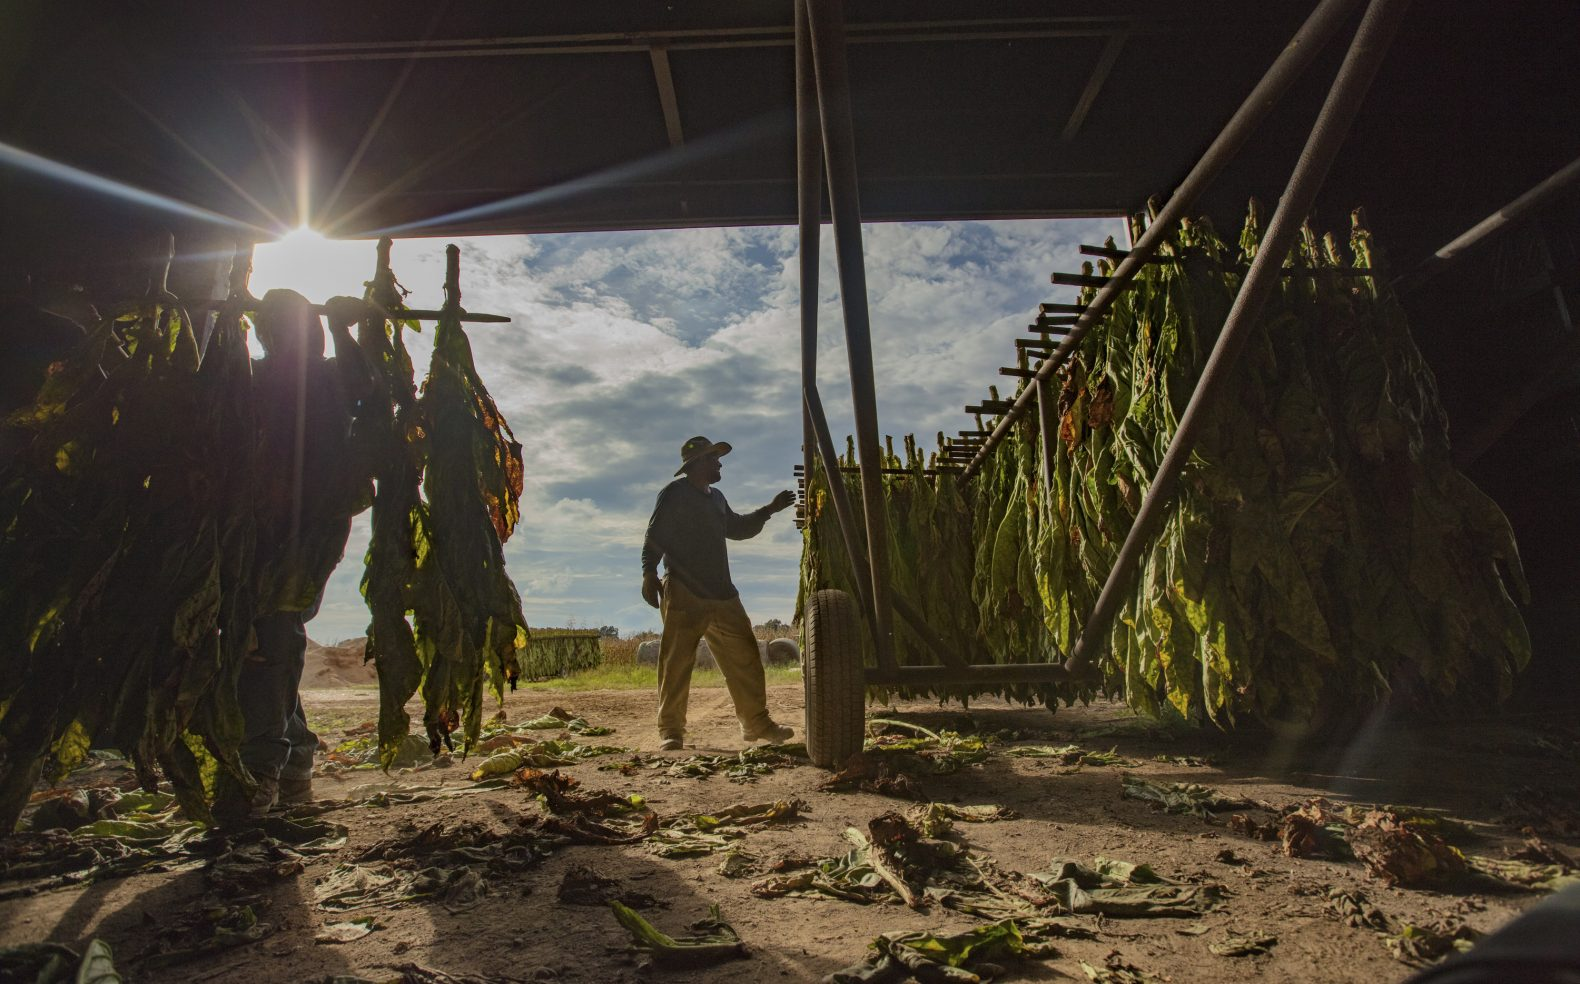 A farmer in North Carolina standing next to rows of tobacco hanging for storage in a shed, a tobacco field in the background.